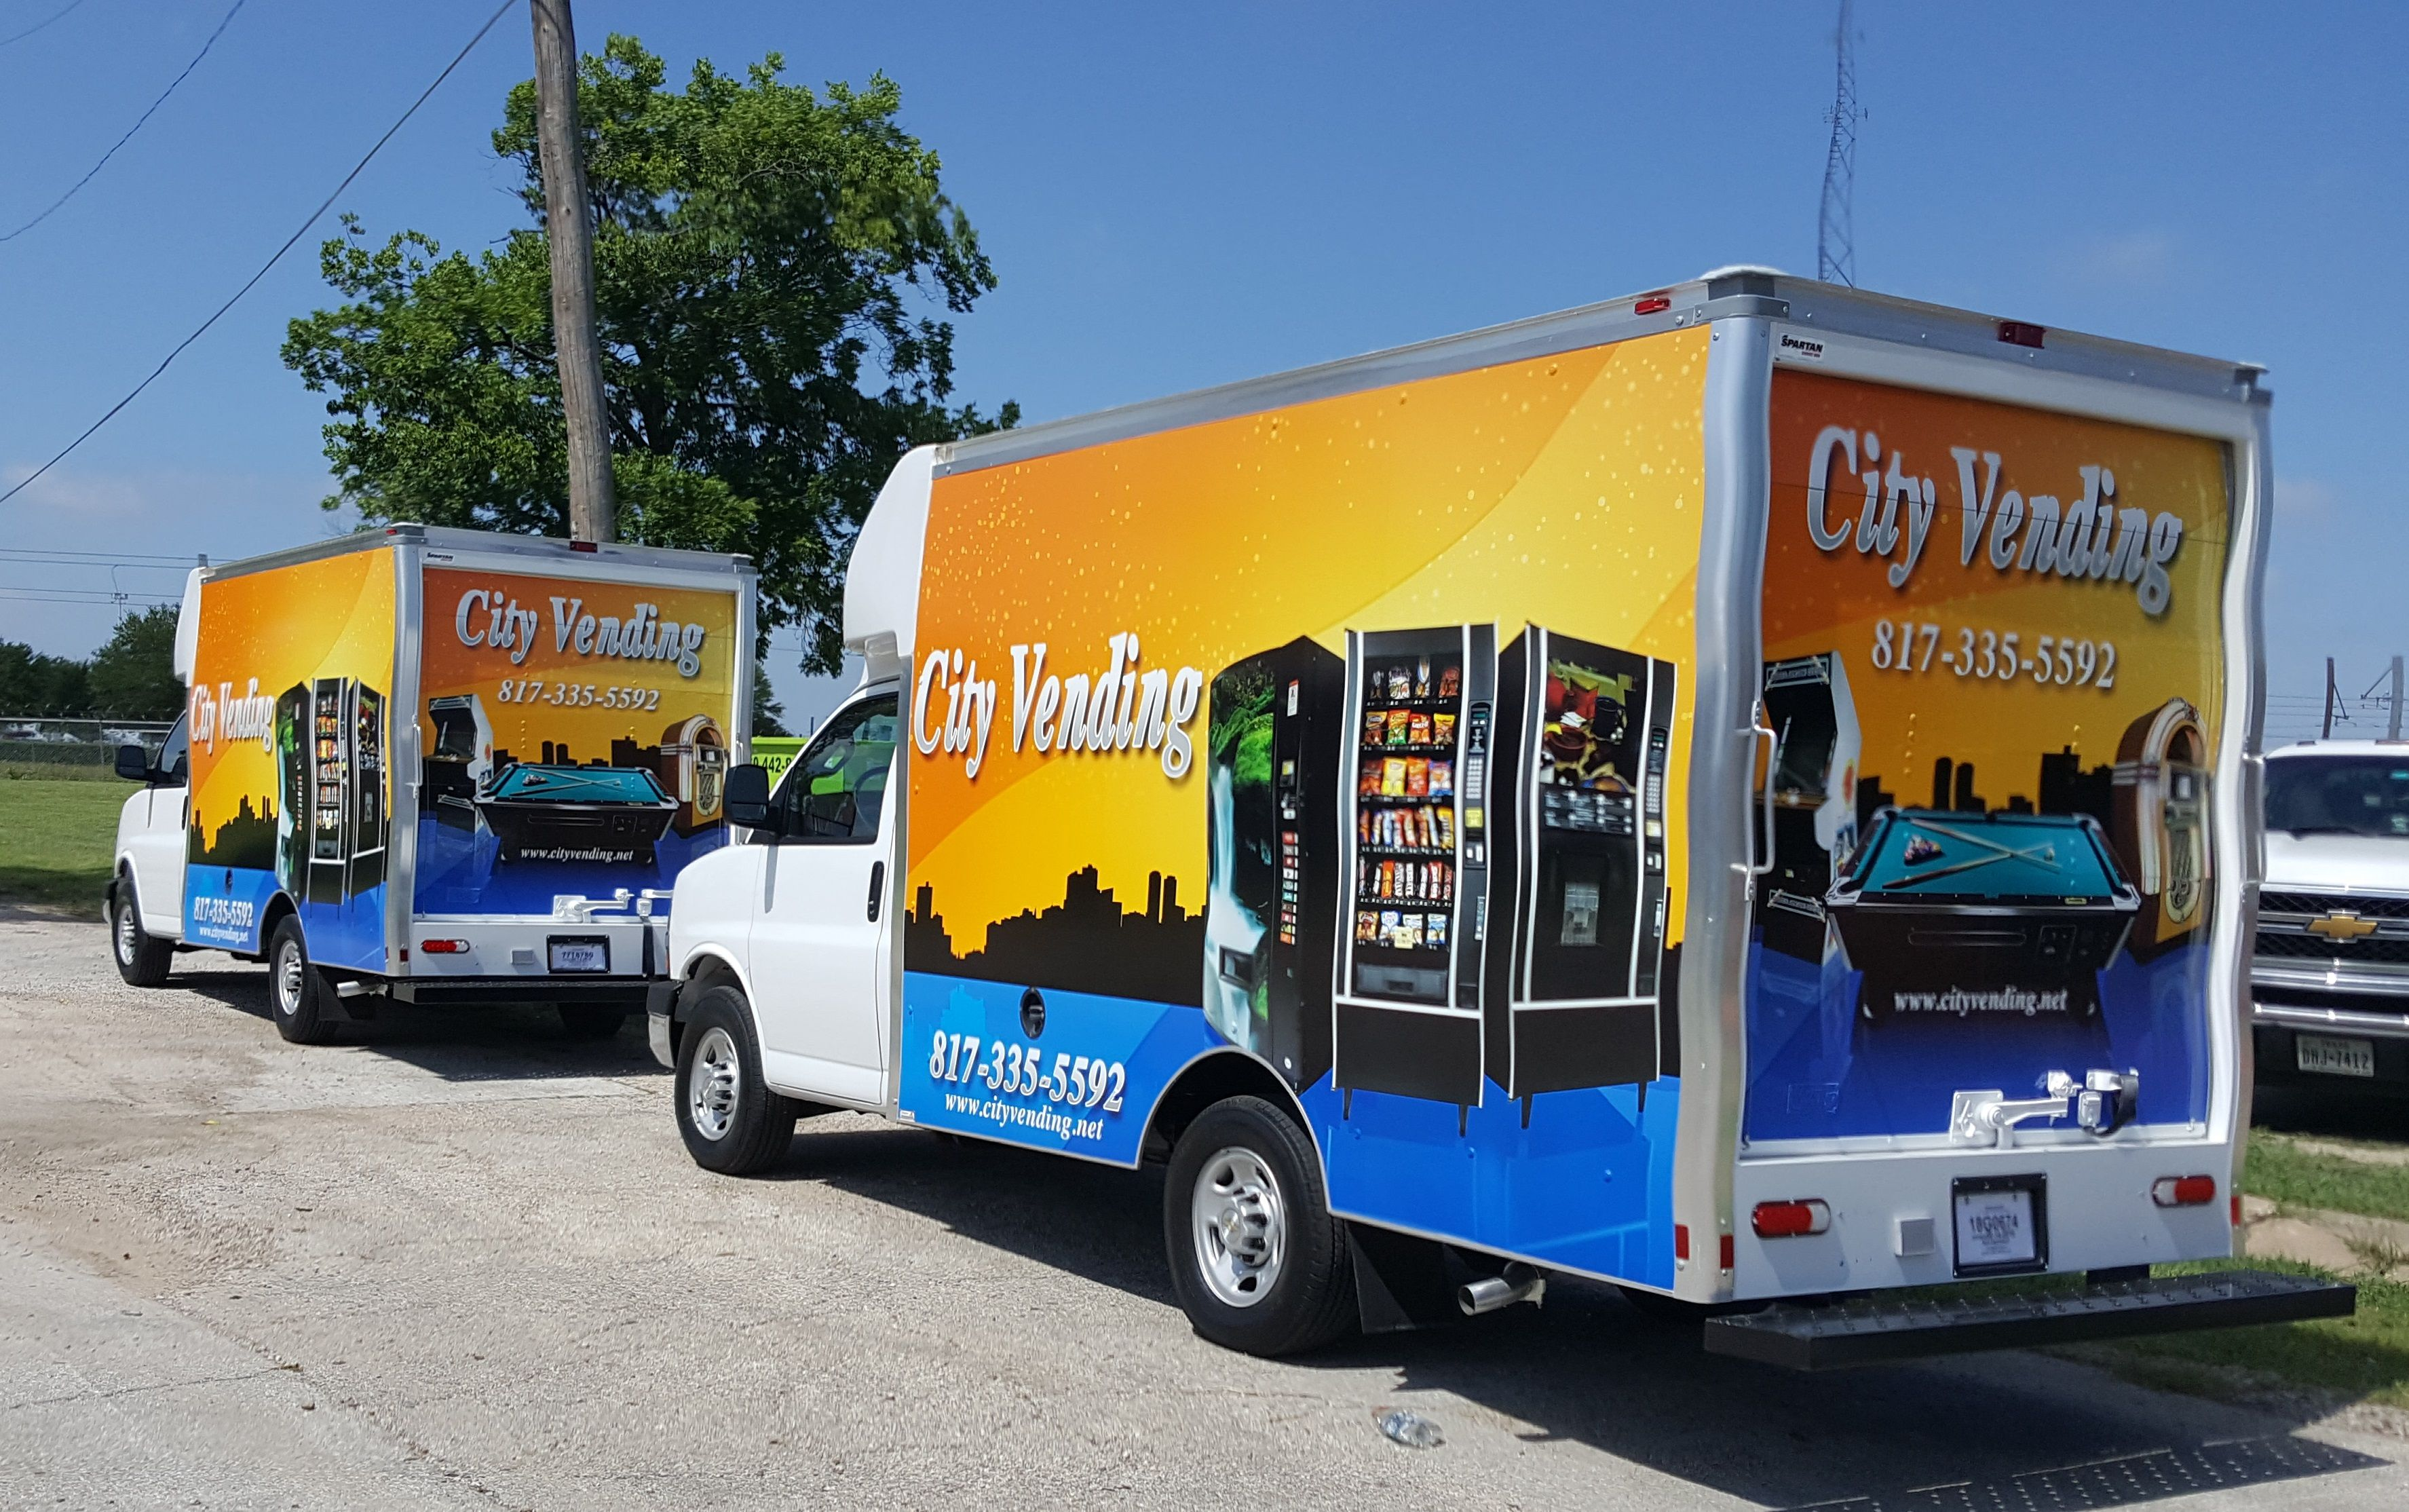 Two New Box Truck Skinzwraps For City Vending Company Fresh Out Of Our Install Bay In Dallas Texas Mobileadvertising Skinzwrap Company City Trucks